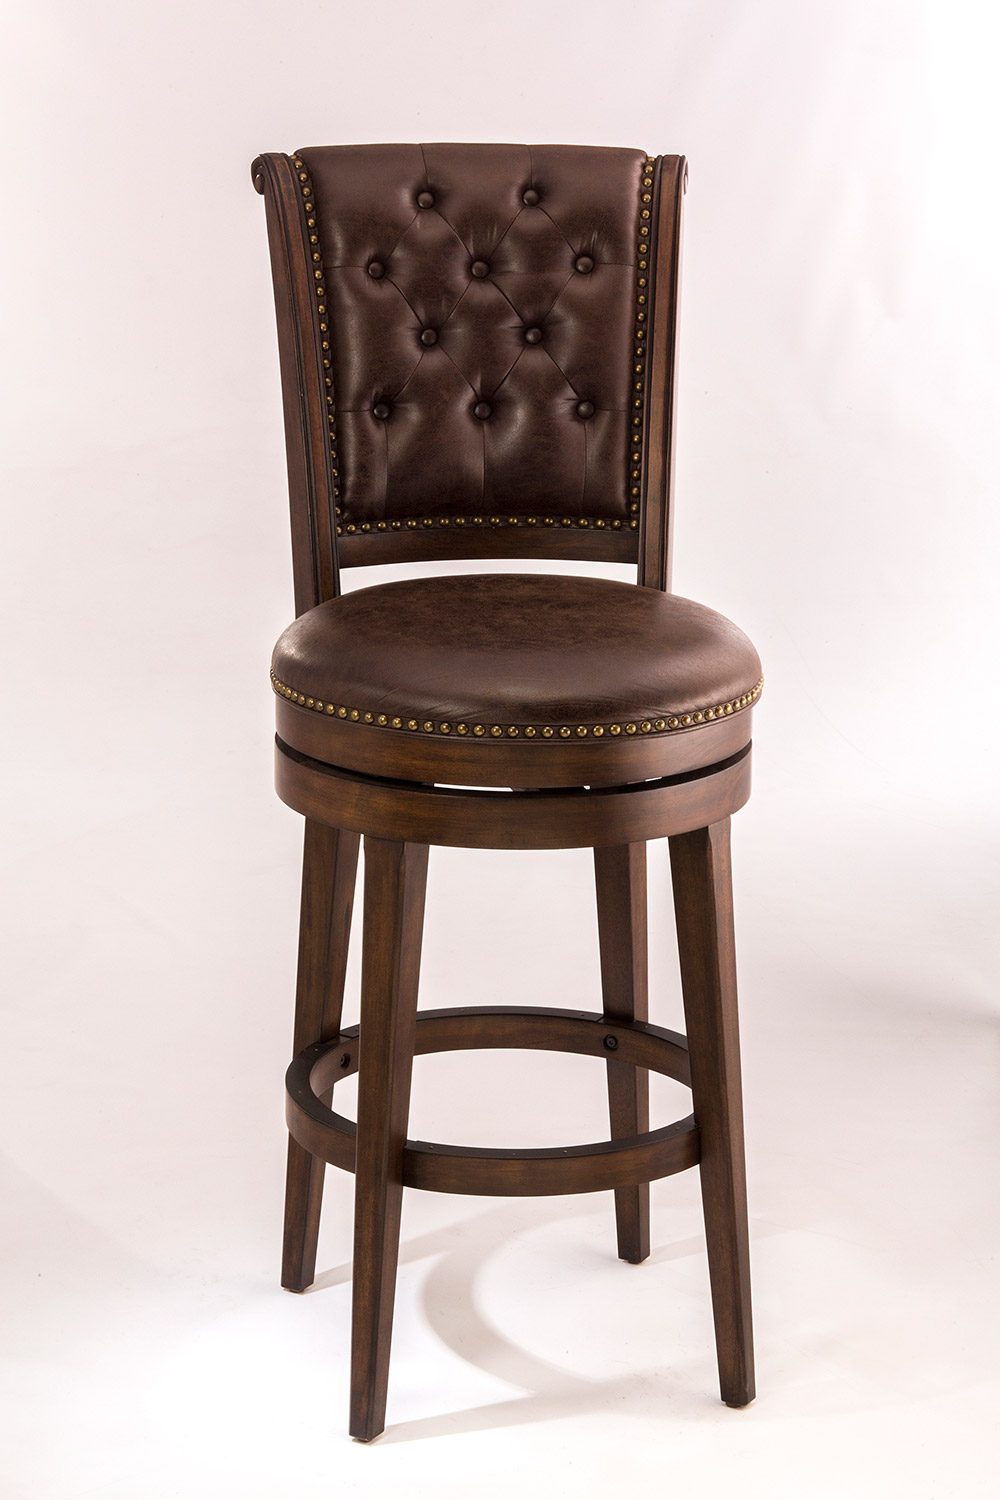 Hillsdale Chiswick Swivel Counter Stool - Brown Cherry